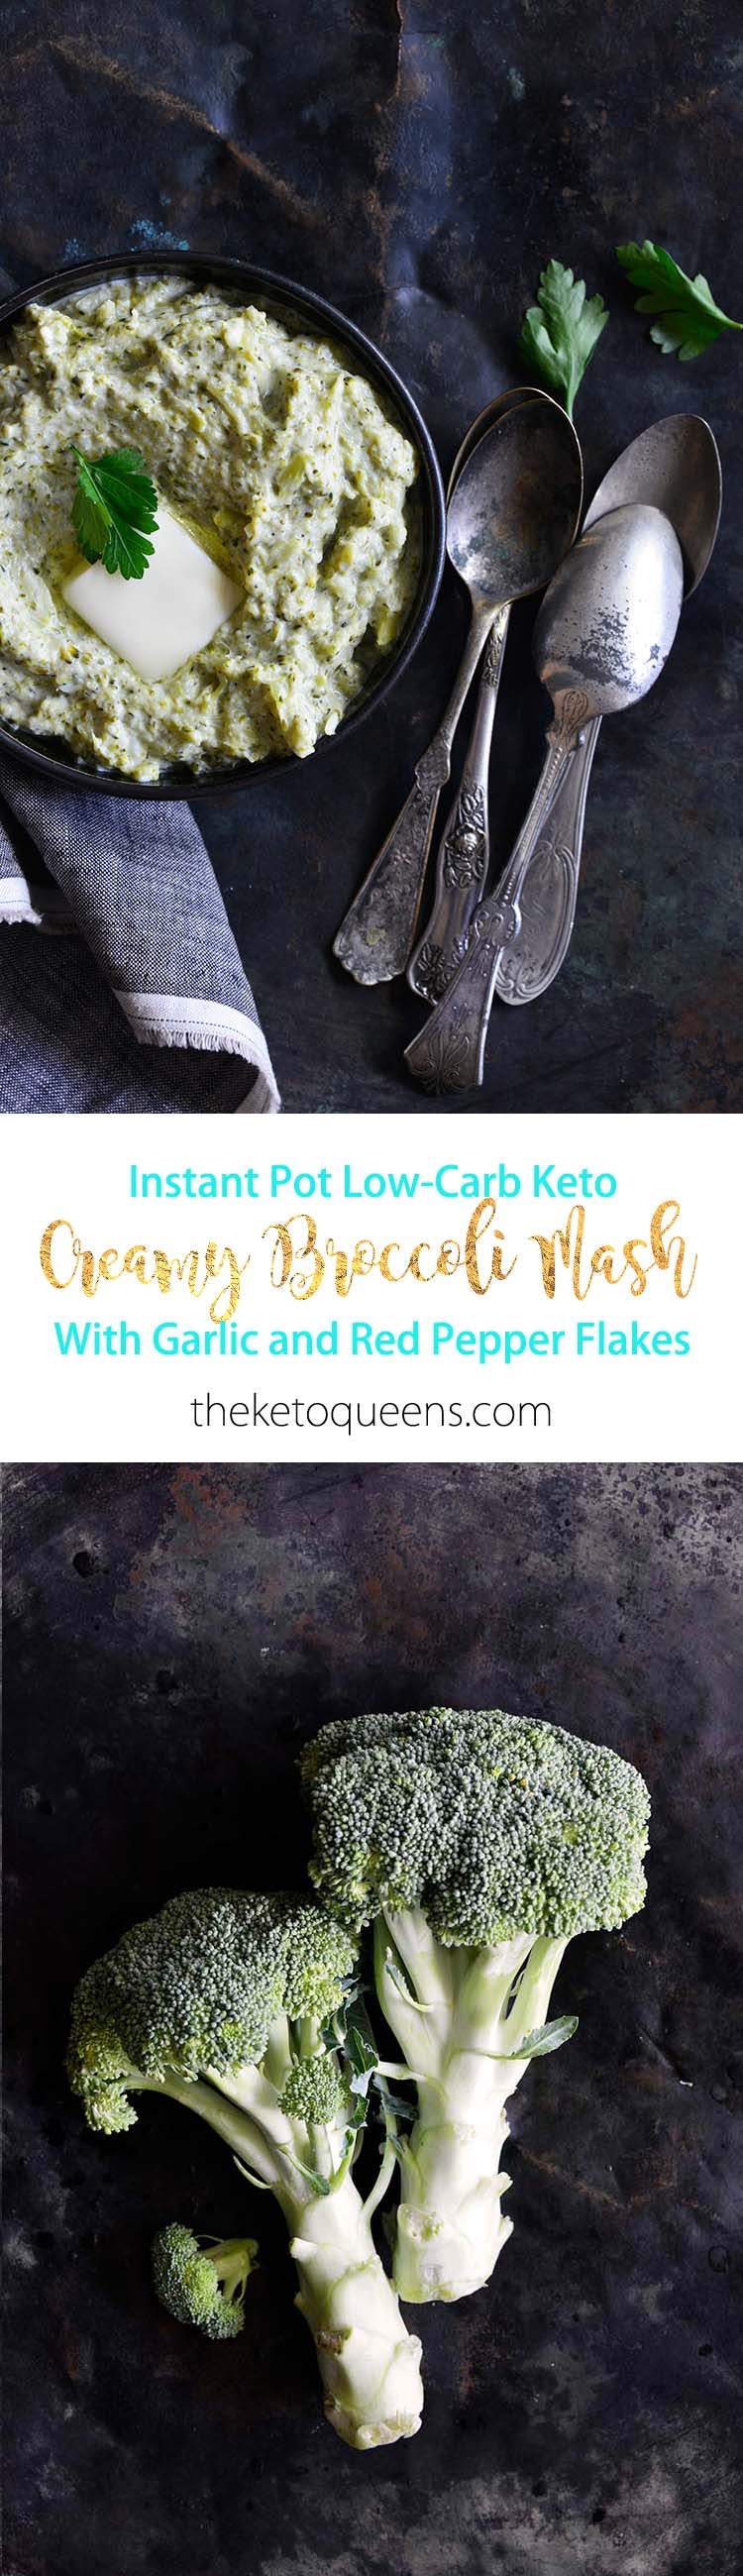 Instant Pot Keto Creamy Garlic Broccoli Mash Long Pin